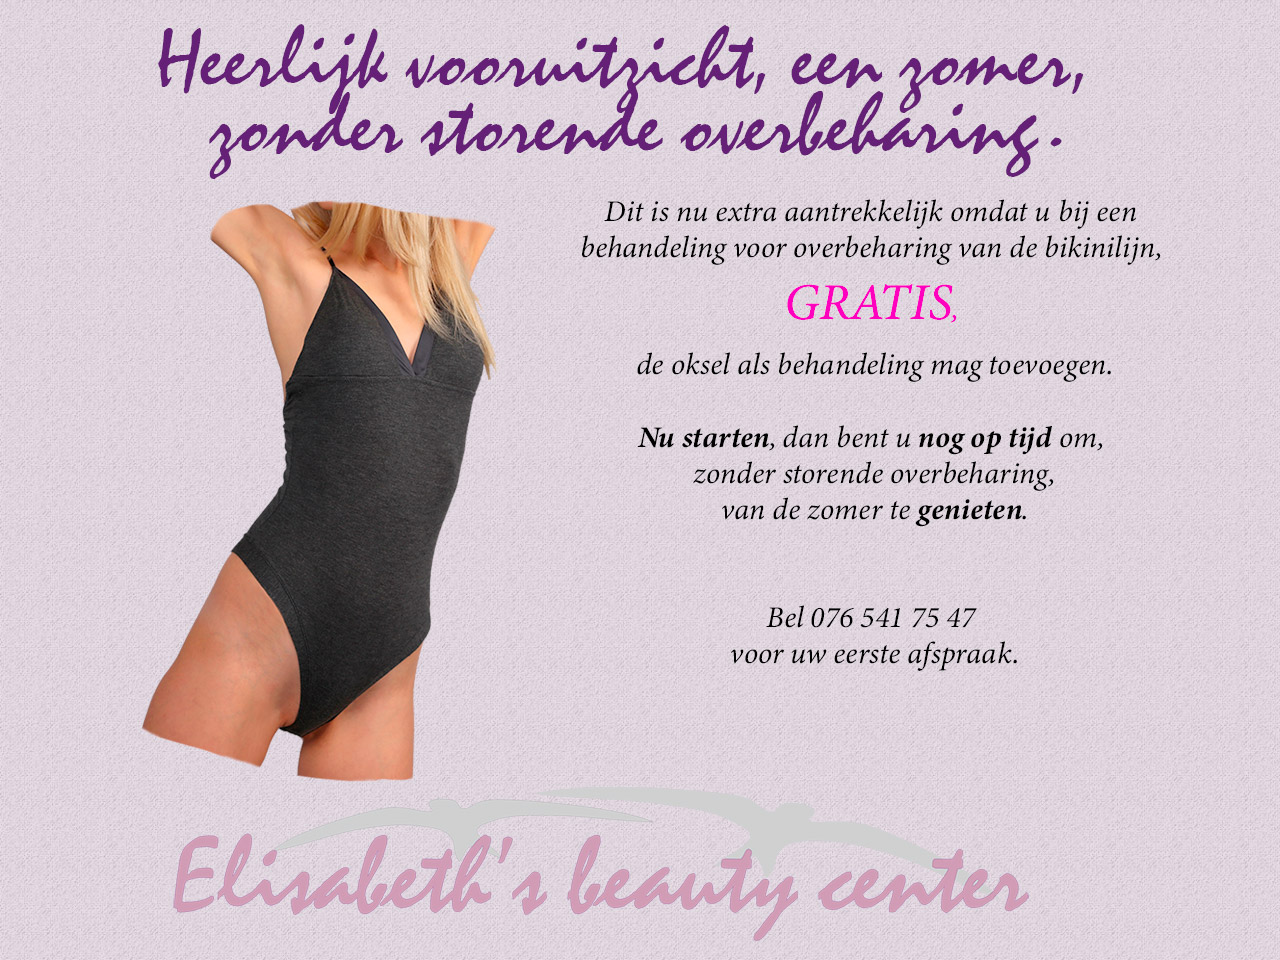 Elisabeth's beauty center - Aanbieding-IPL